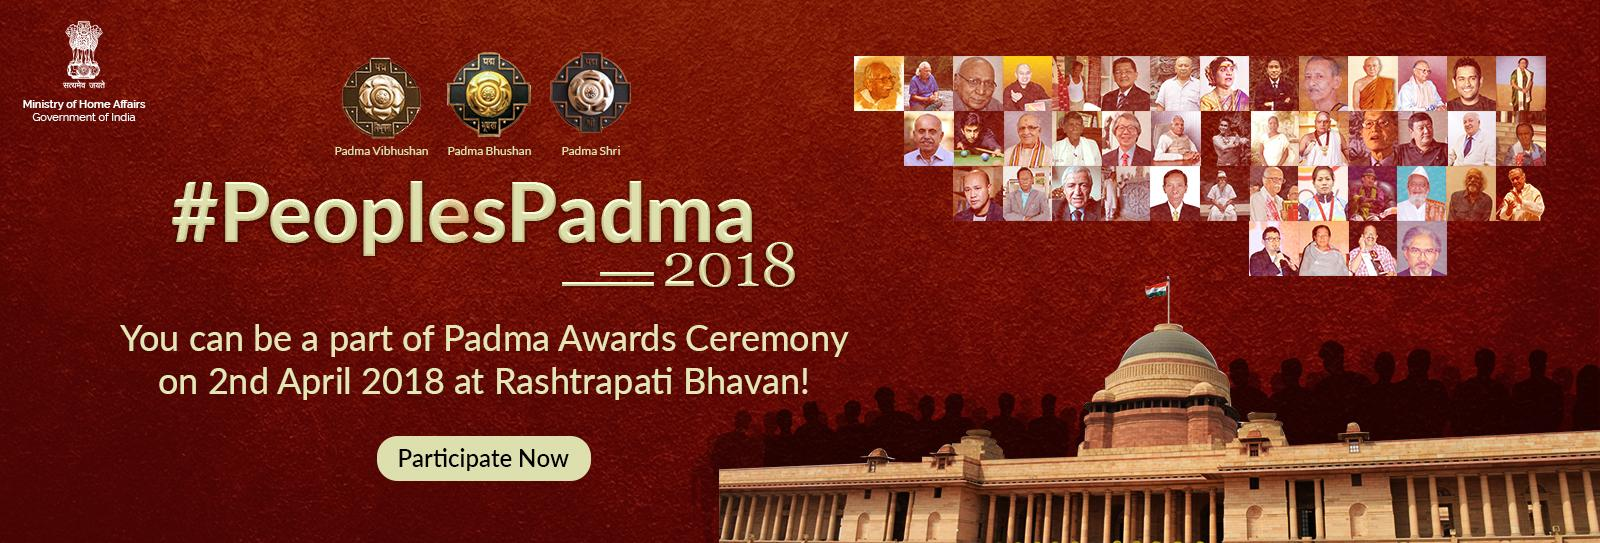 Padma Awards Campaign